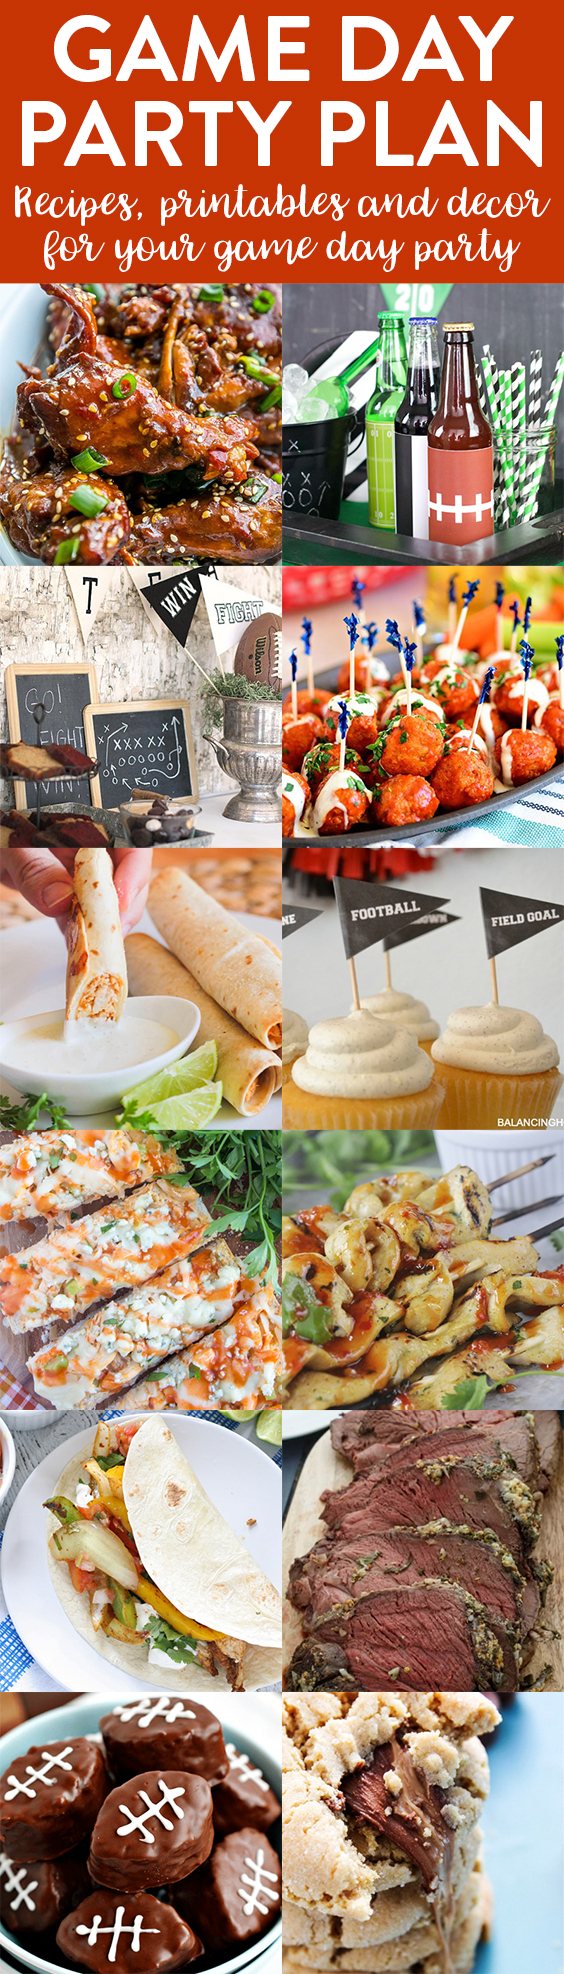 game day party plan | football | big game | entertaining | recipes | appetizers | printables